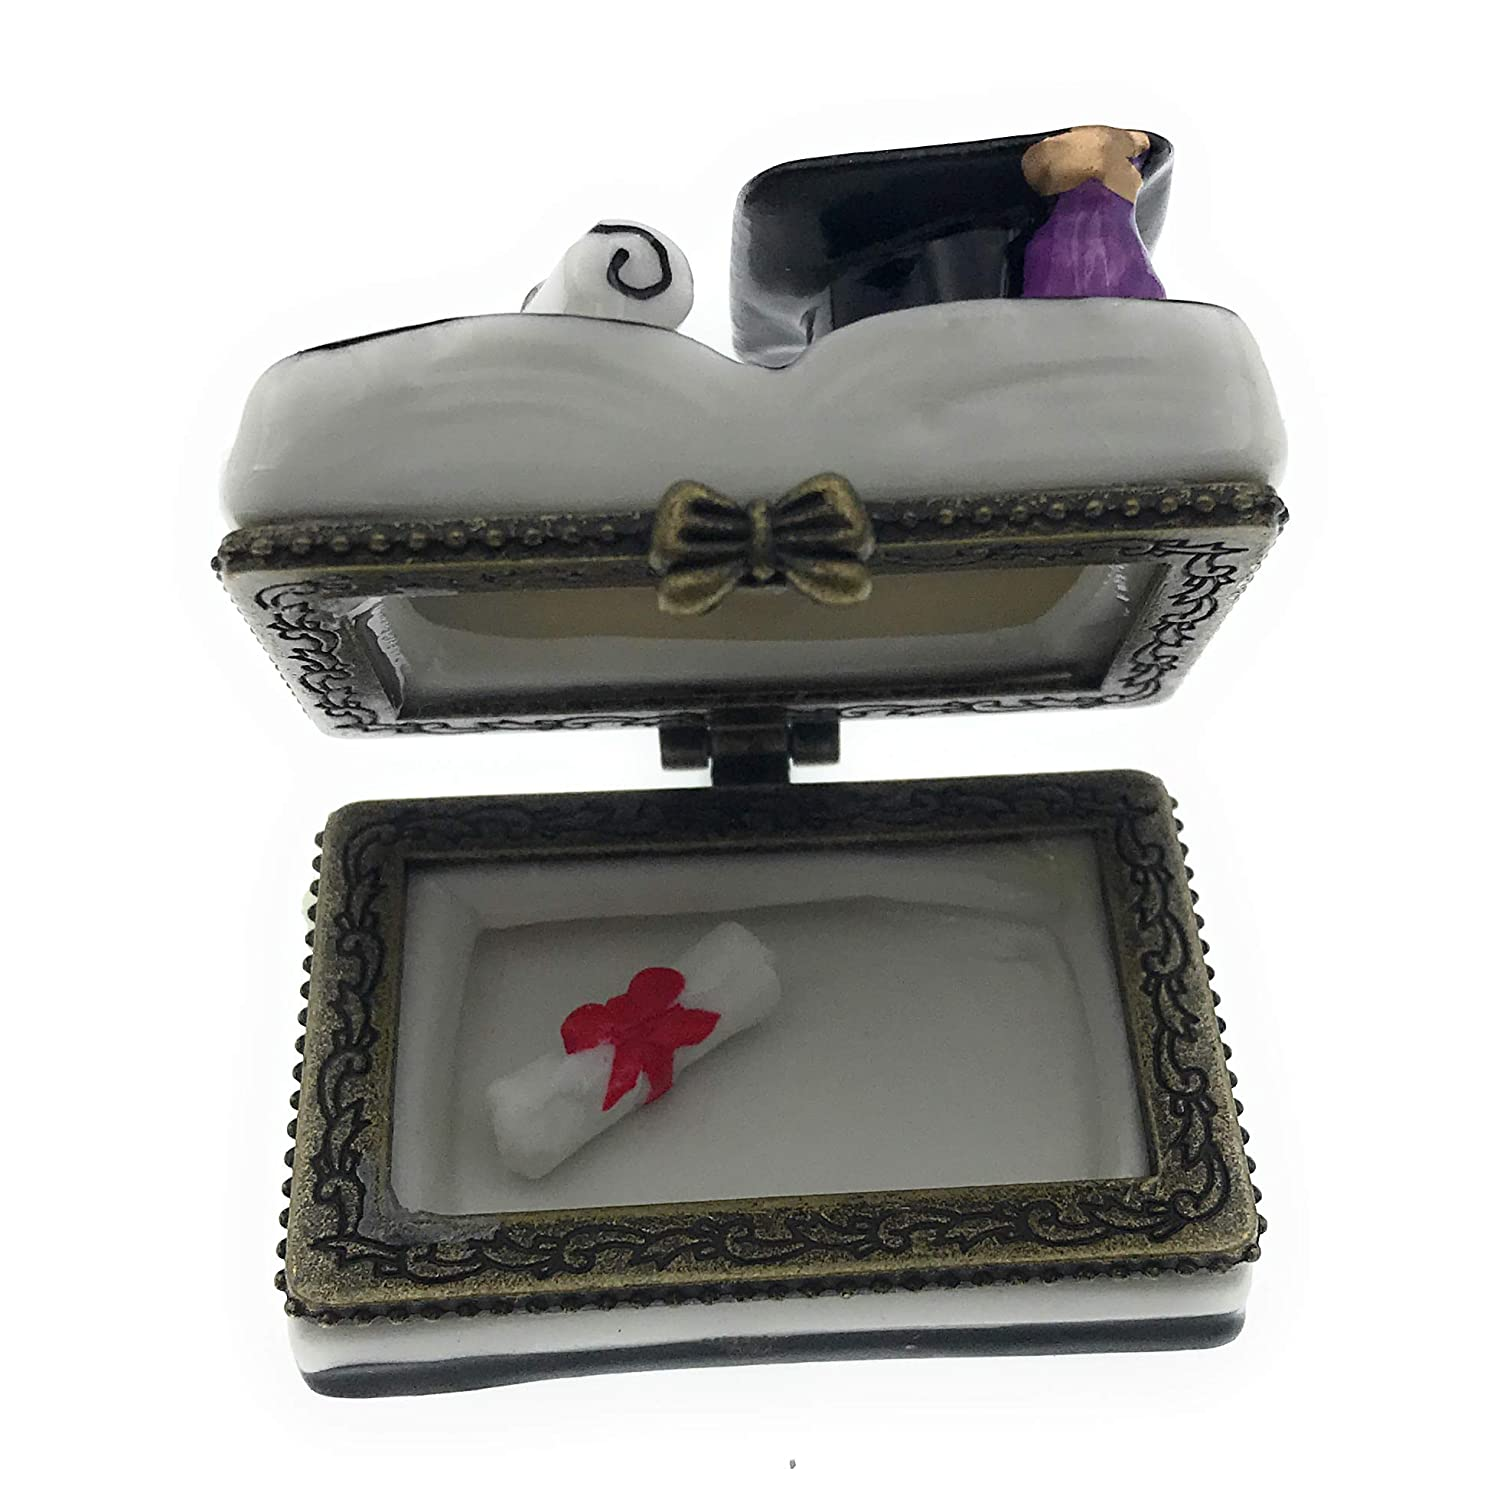 Graduation Diploma and Hat on Book Shaped Porcelain Trinket Box with Tiny Trinket Inside 1.75W by ArtGifts